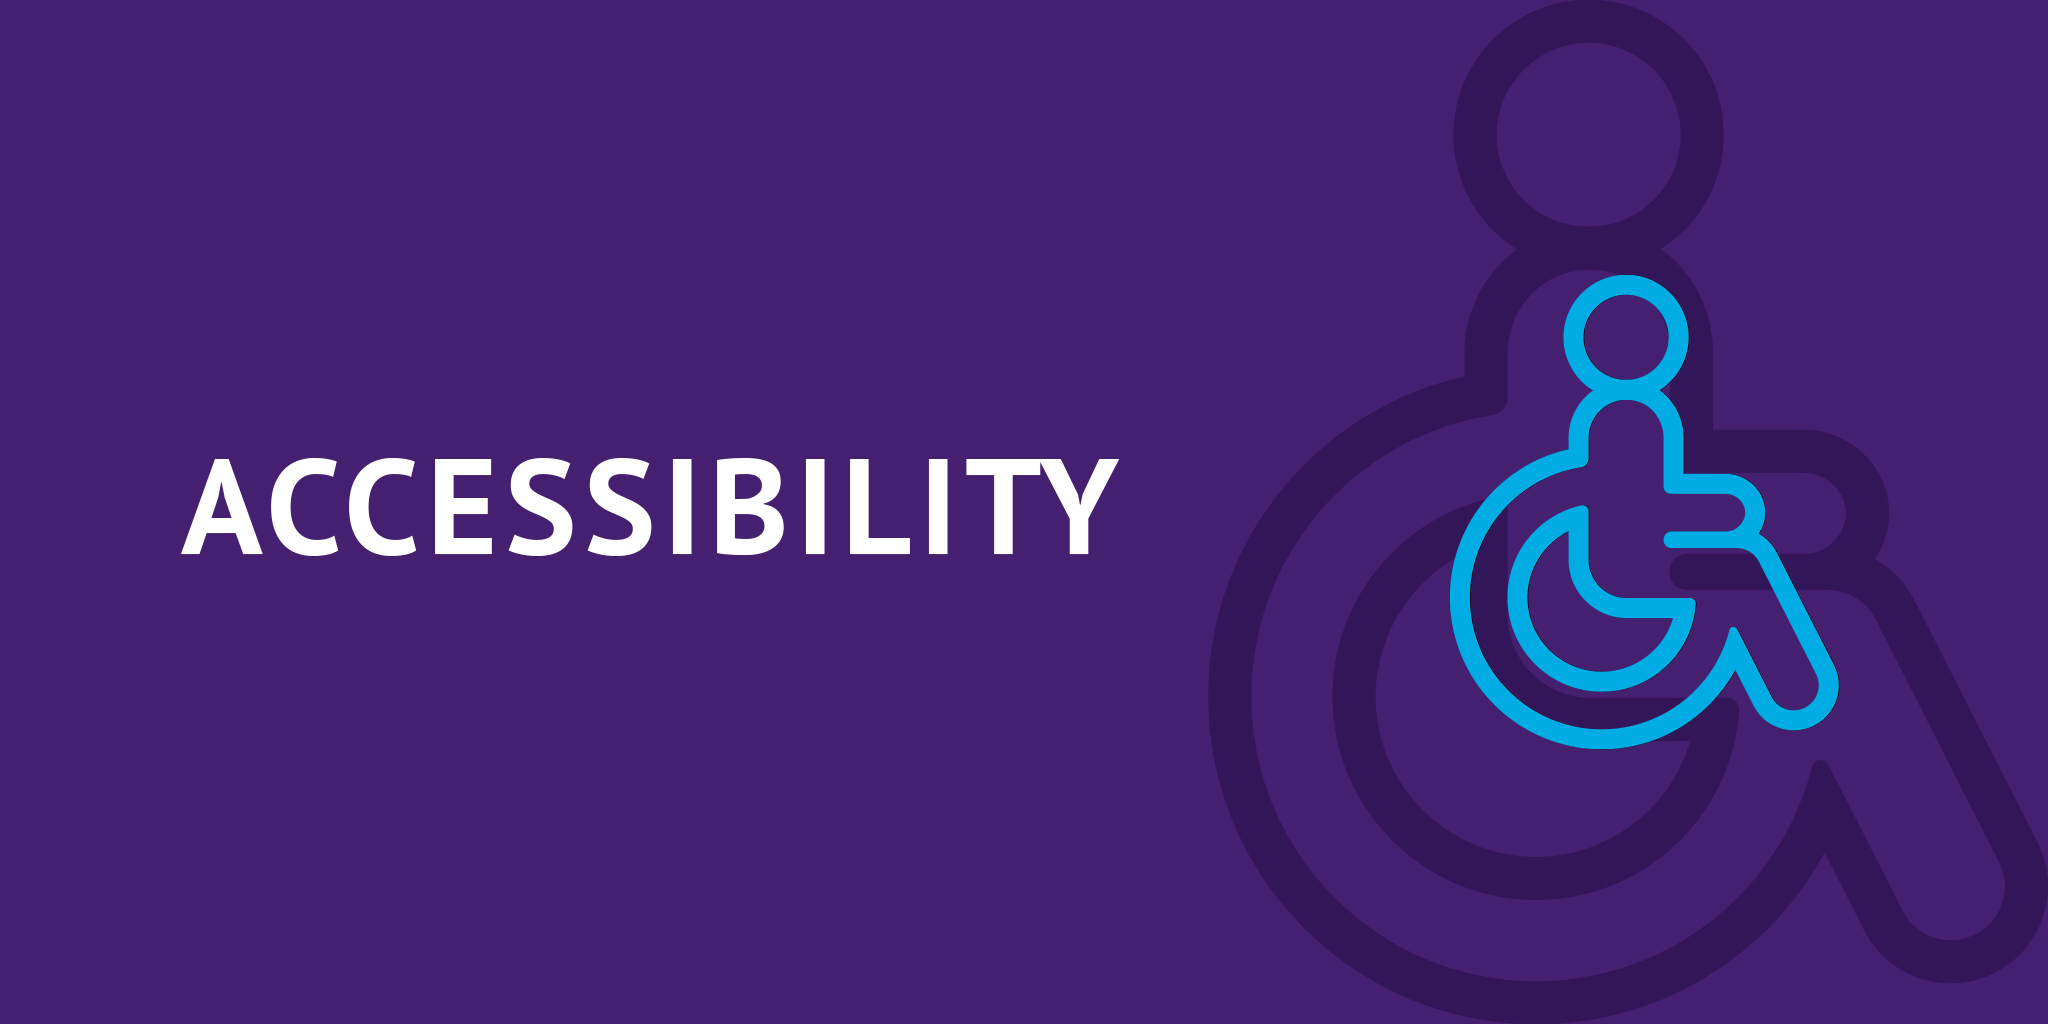 Illustration image representing Accessibility